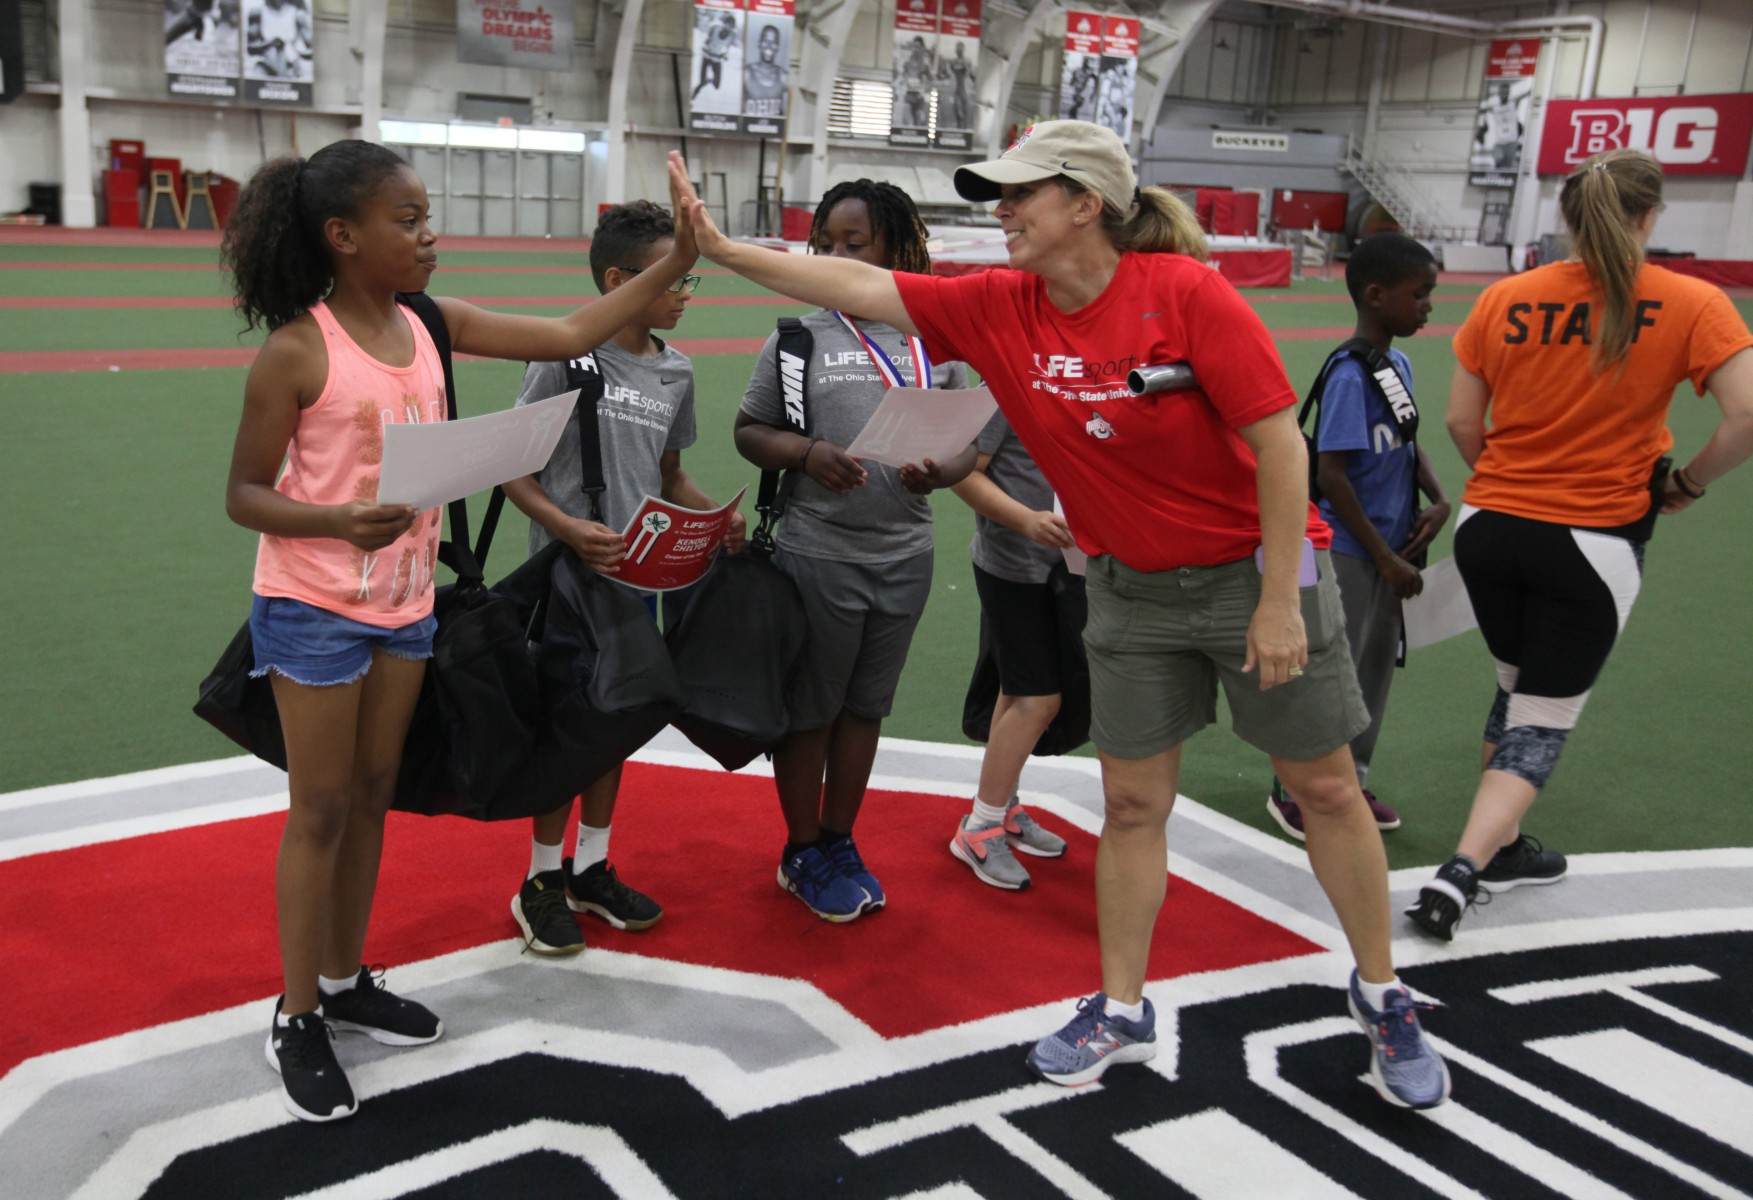 Dawn Anderson-Butcher, professor in the College of Social Work and executive director of teaching and research for LiFEsports, interacts with participants at the 2019 LiFEsports camp.